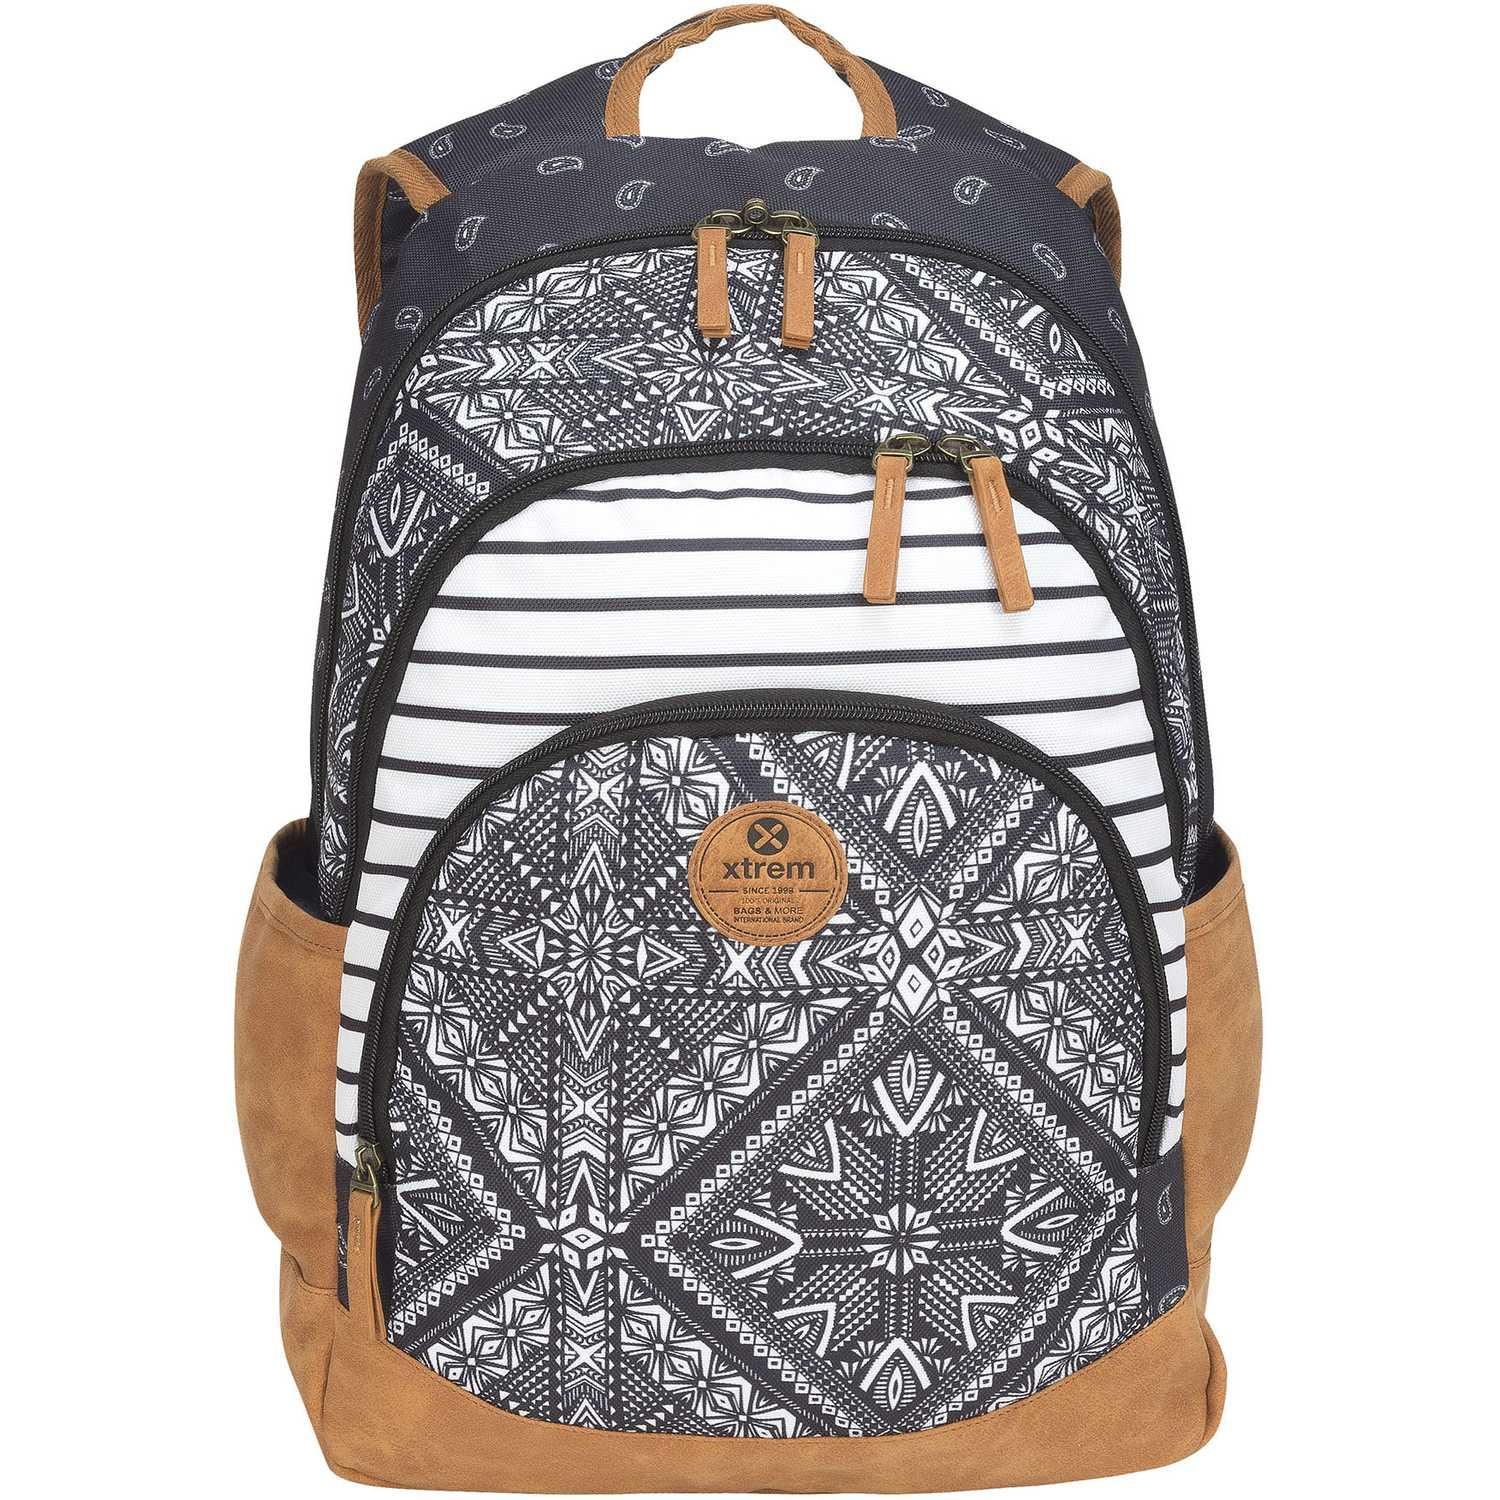 Xtrem backpack ethnic beauty victory 814 Varios mochilas